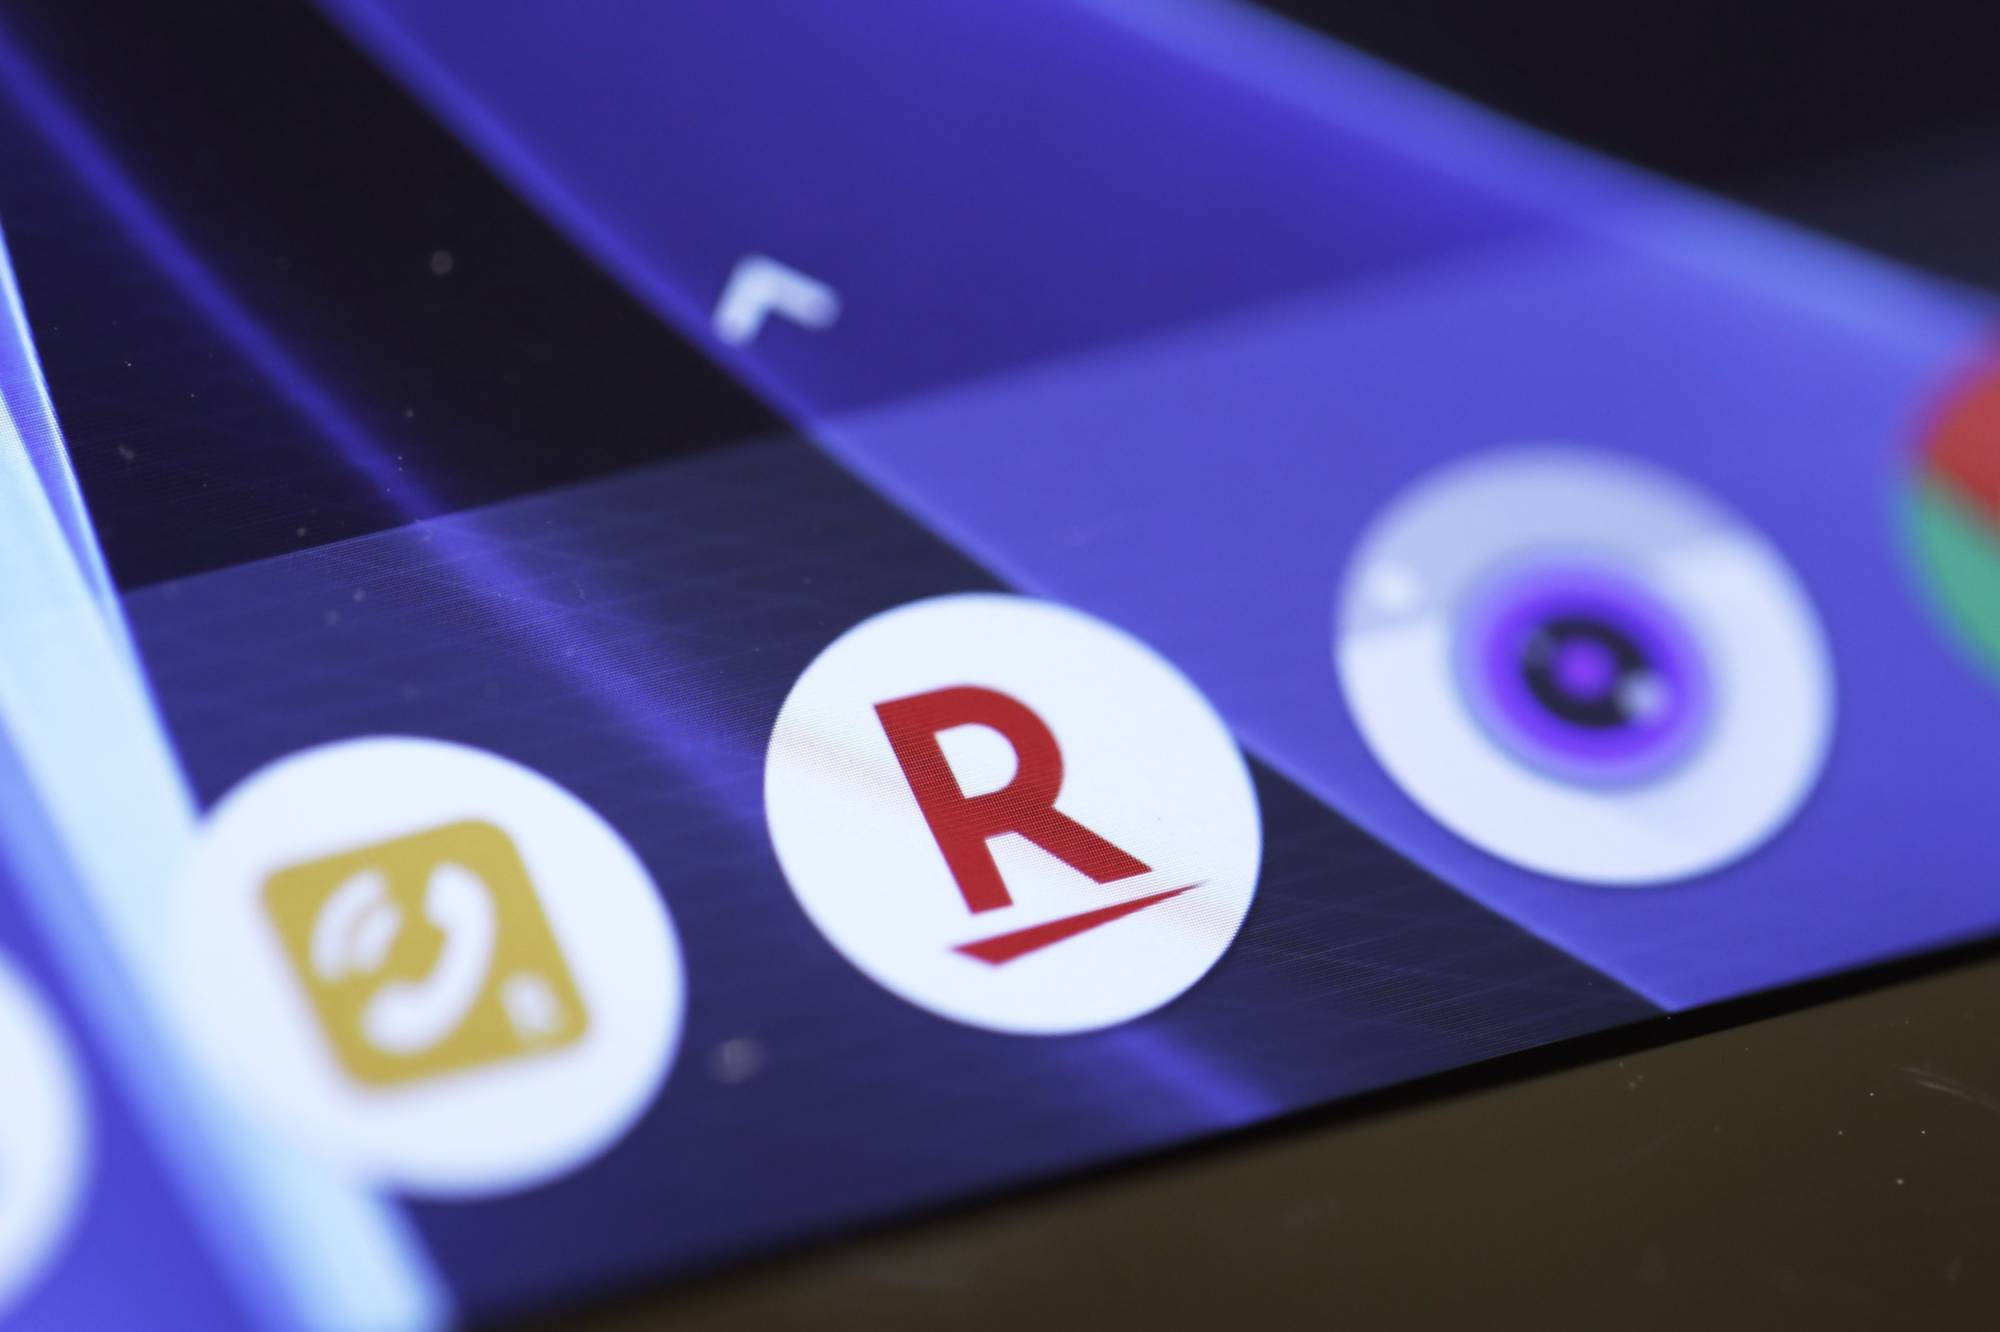 The icon for the Rakuten Inc. e-commerce store app is displayed on a smartphone inside the company's cafe in Tokyo in January 2019. | BLOOMBERG